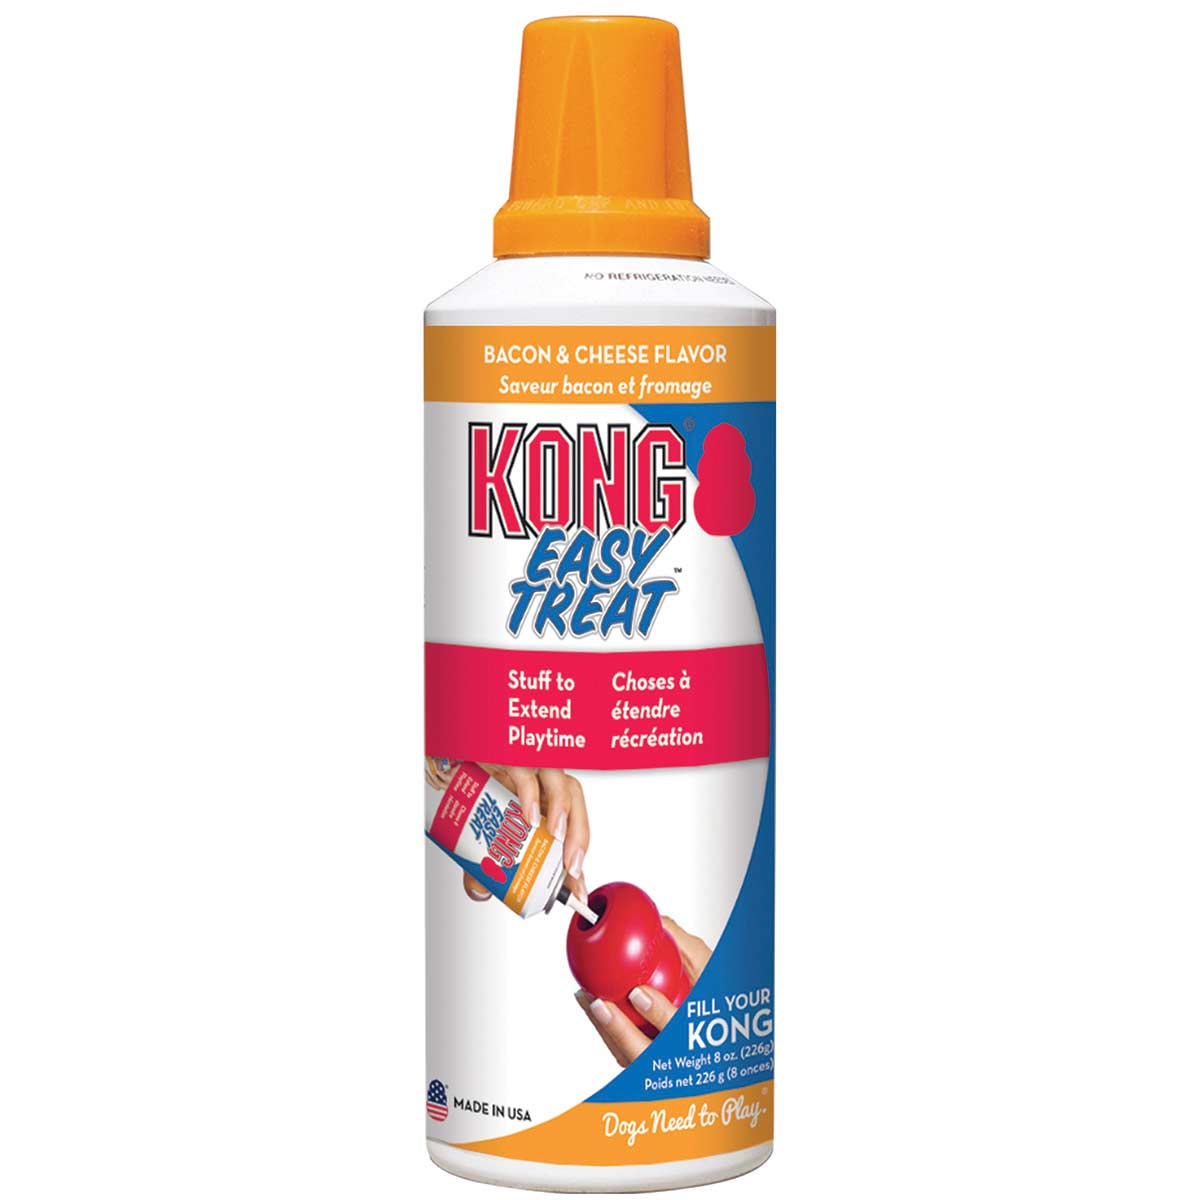 8 oz KONG Stuff'n Paste Easy Treat Bacon & Cheese for Dogs